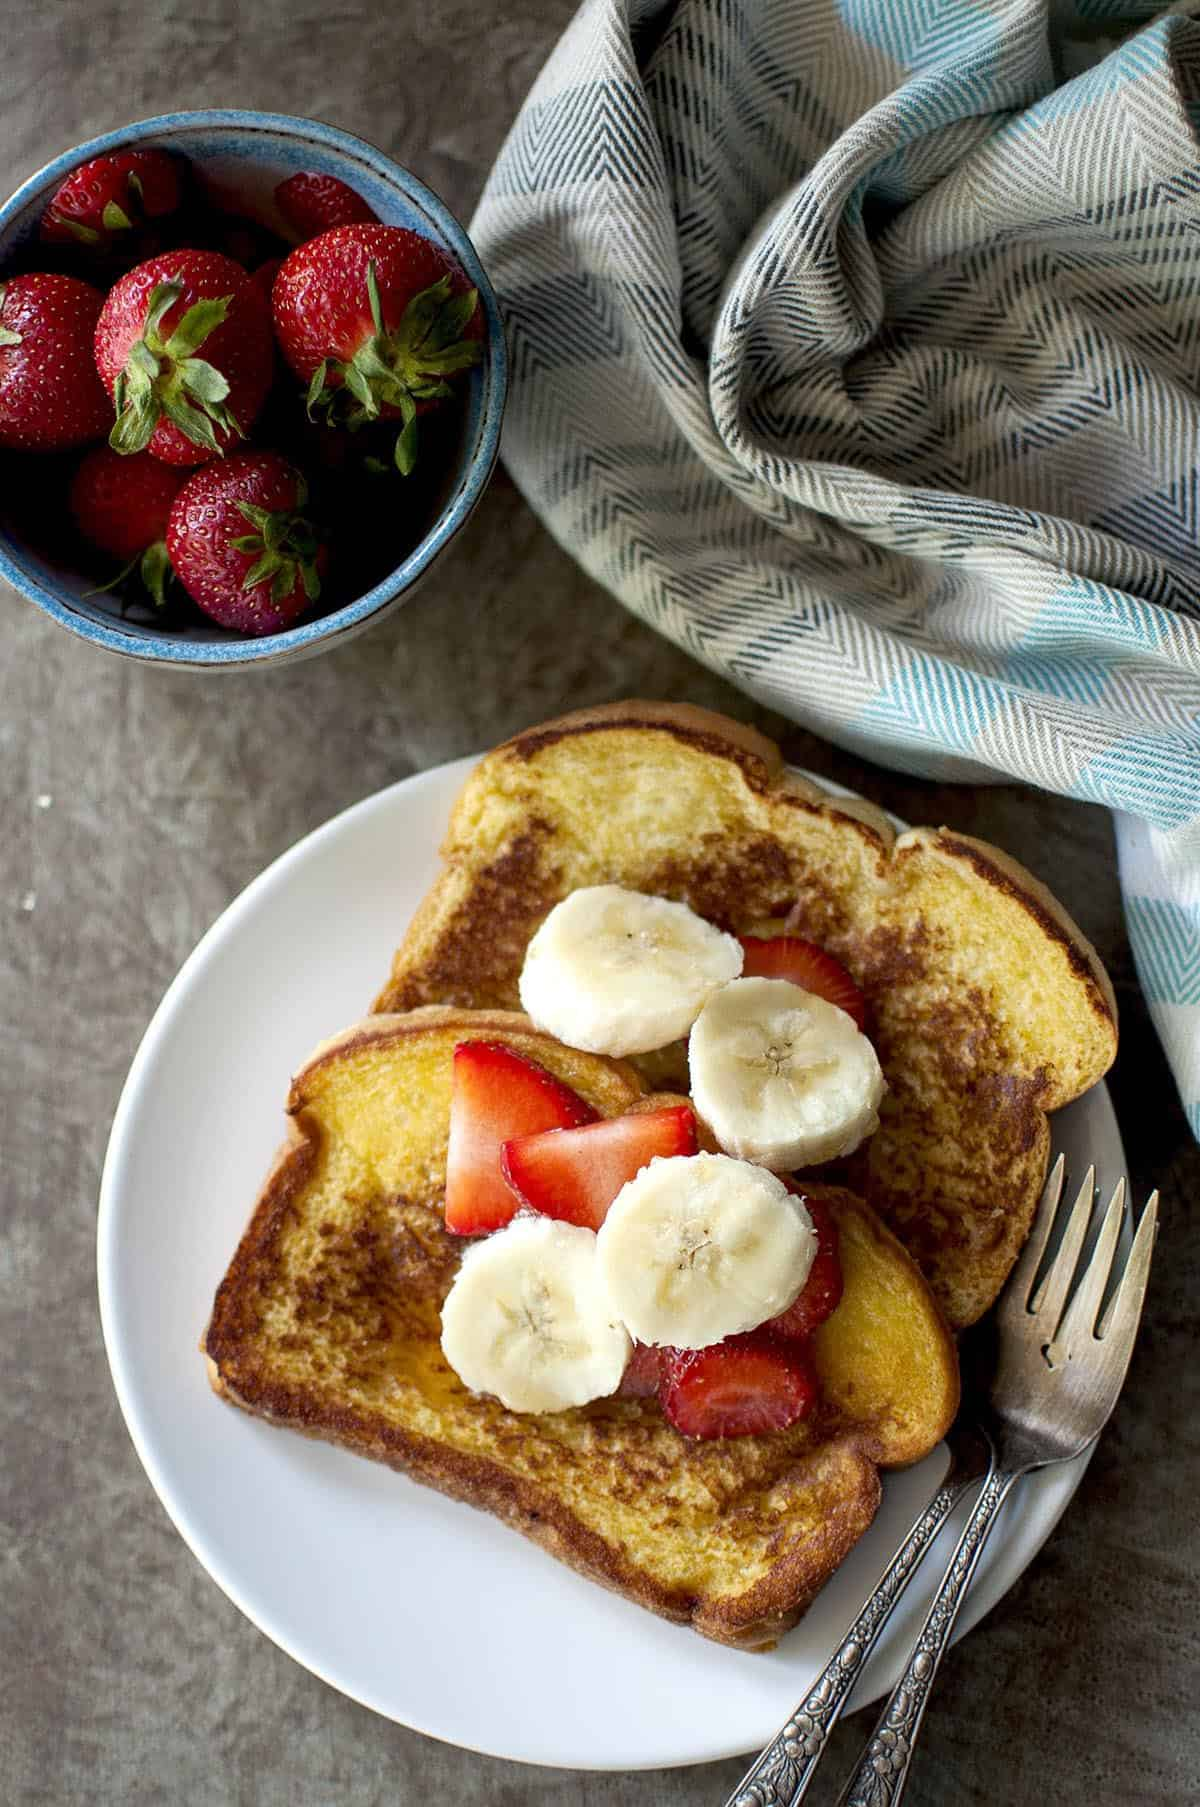 White plate with 2 french toast slices topped with fresh fruit